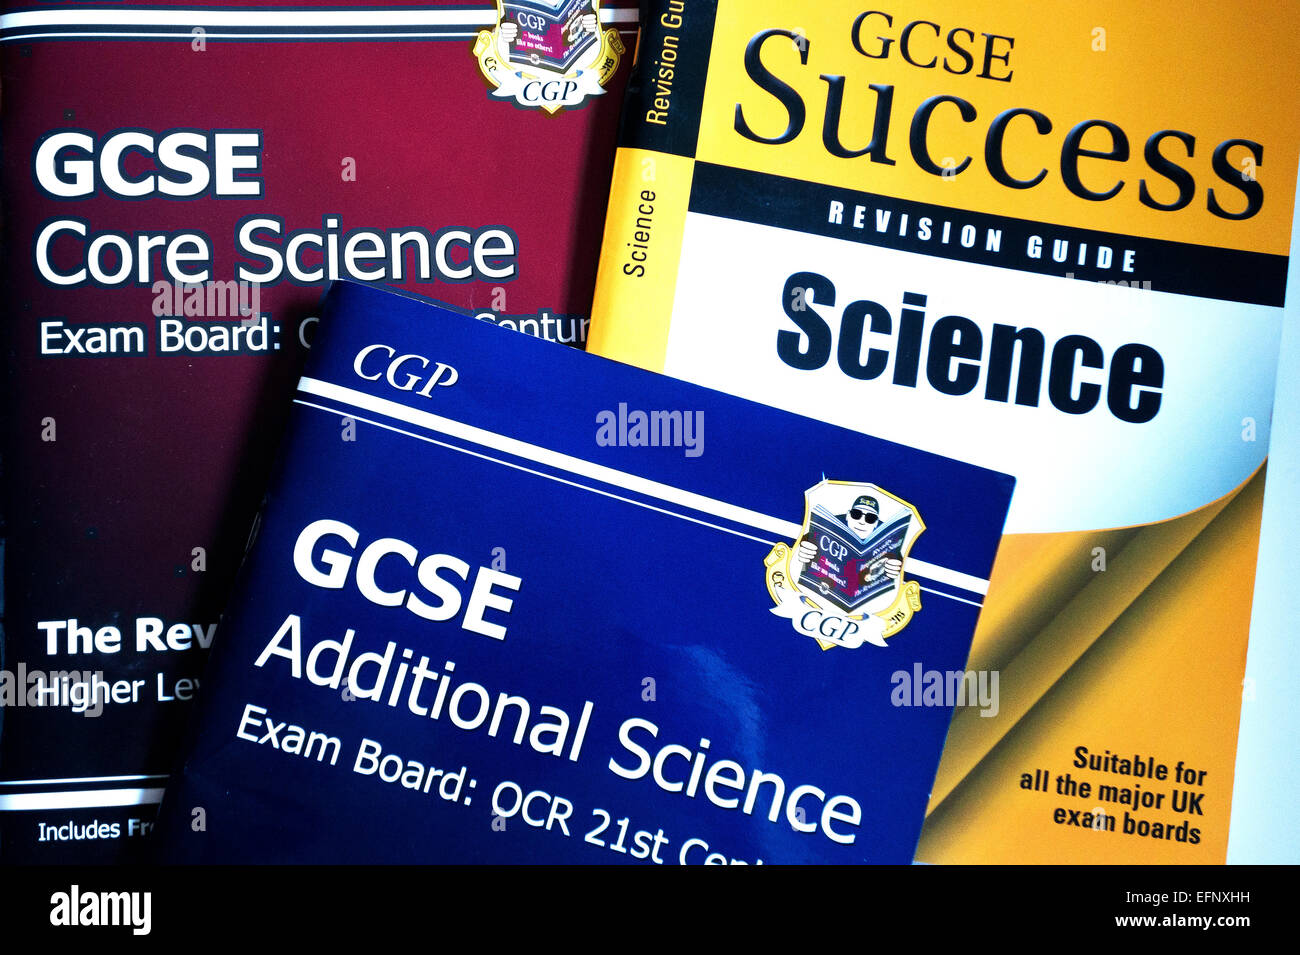 GCSE Science revision books - Stock Image